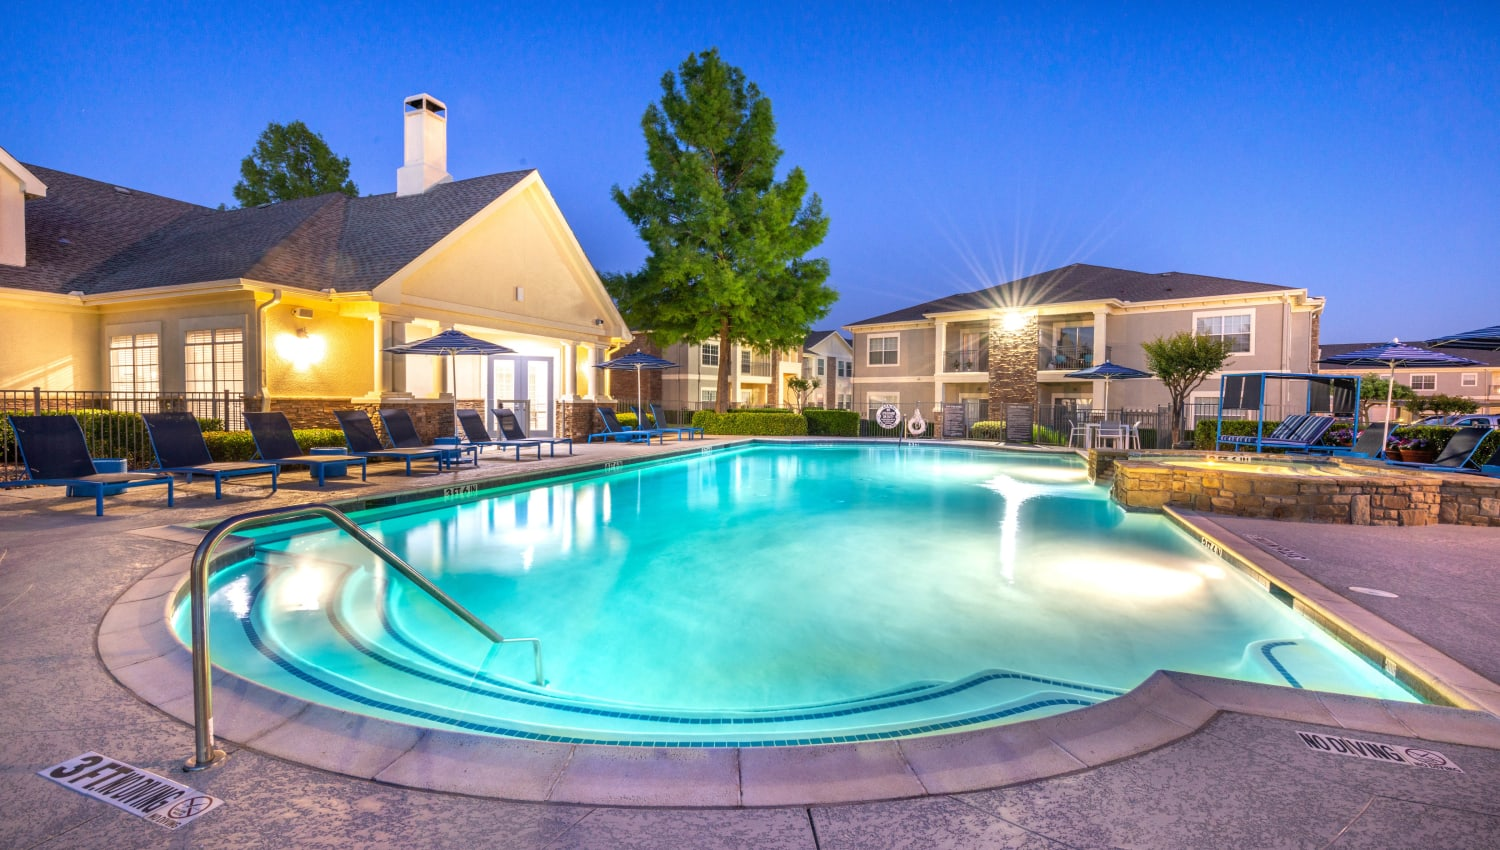 Twilight at the swimming pool area at Olympus Stone Glen in Keller, Texas